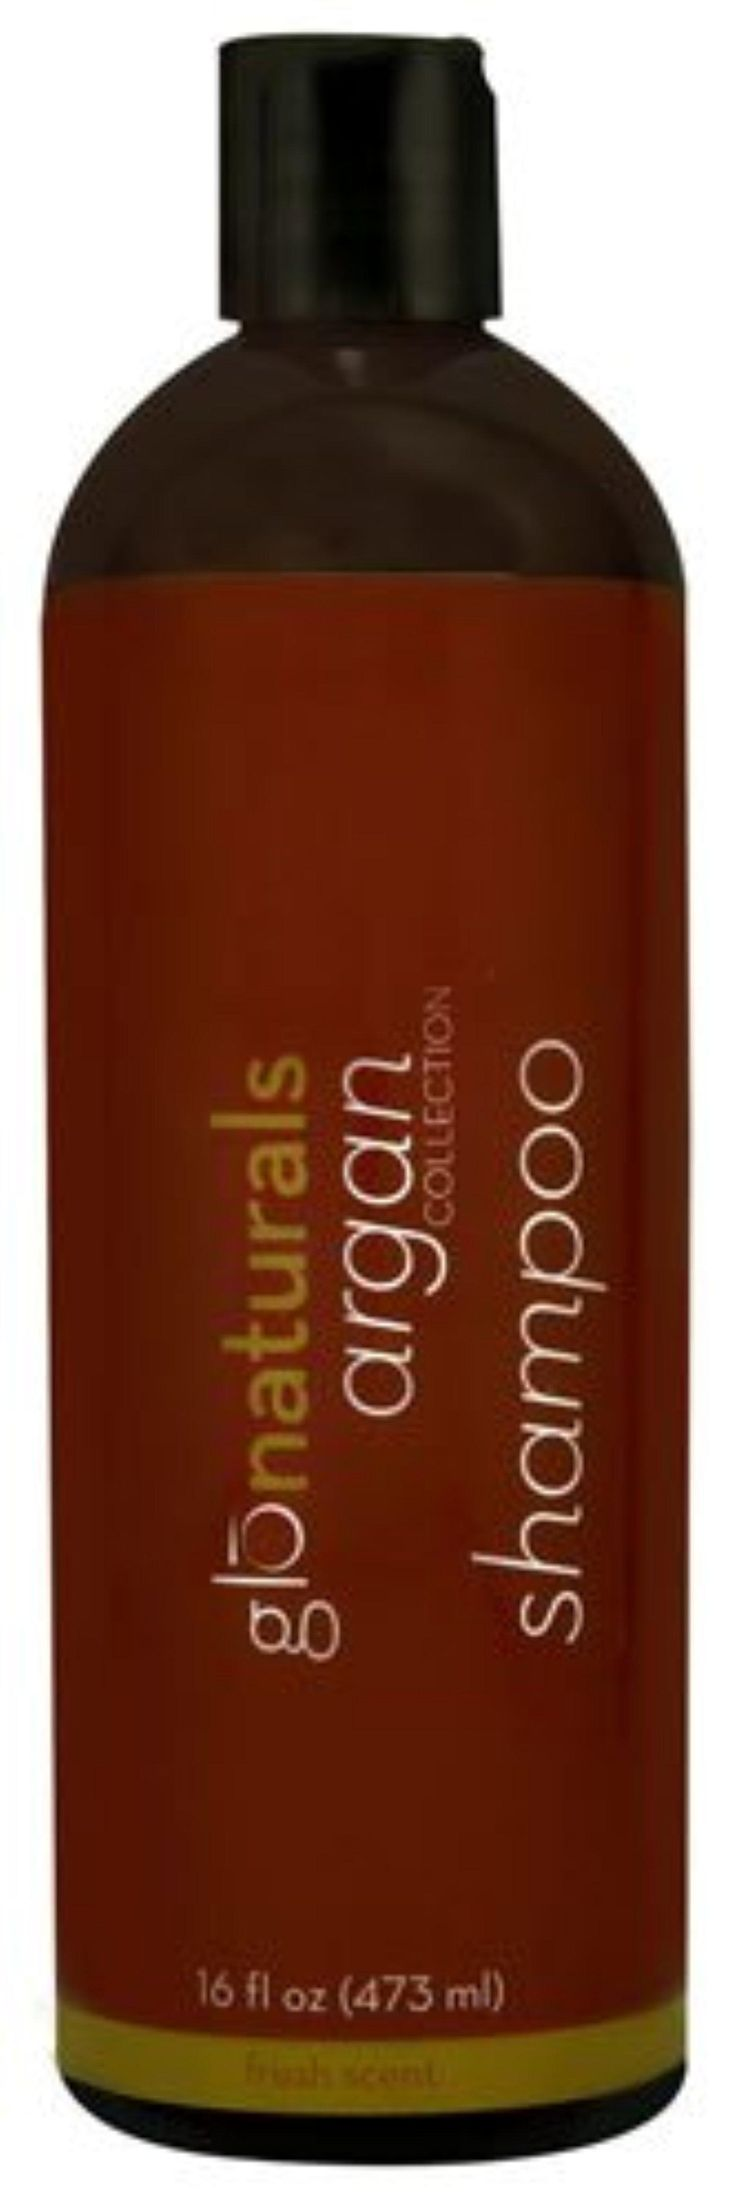 Glonaturals Argan Collection - Argan Shampoo - Non-GMO -- 16 fl oz (473 mL) - Brought to you by Avarsha.com